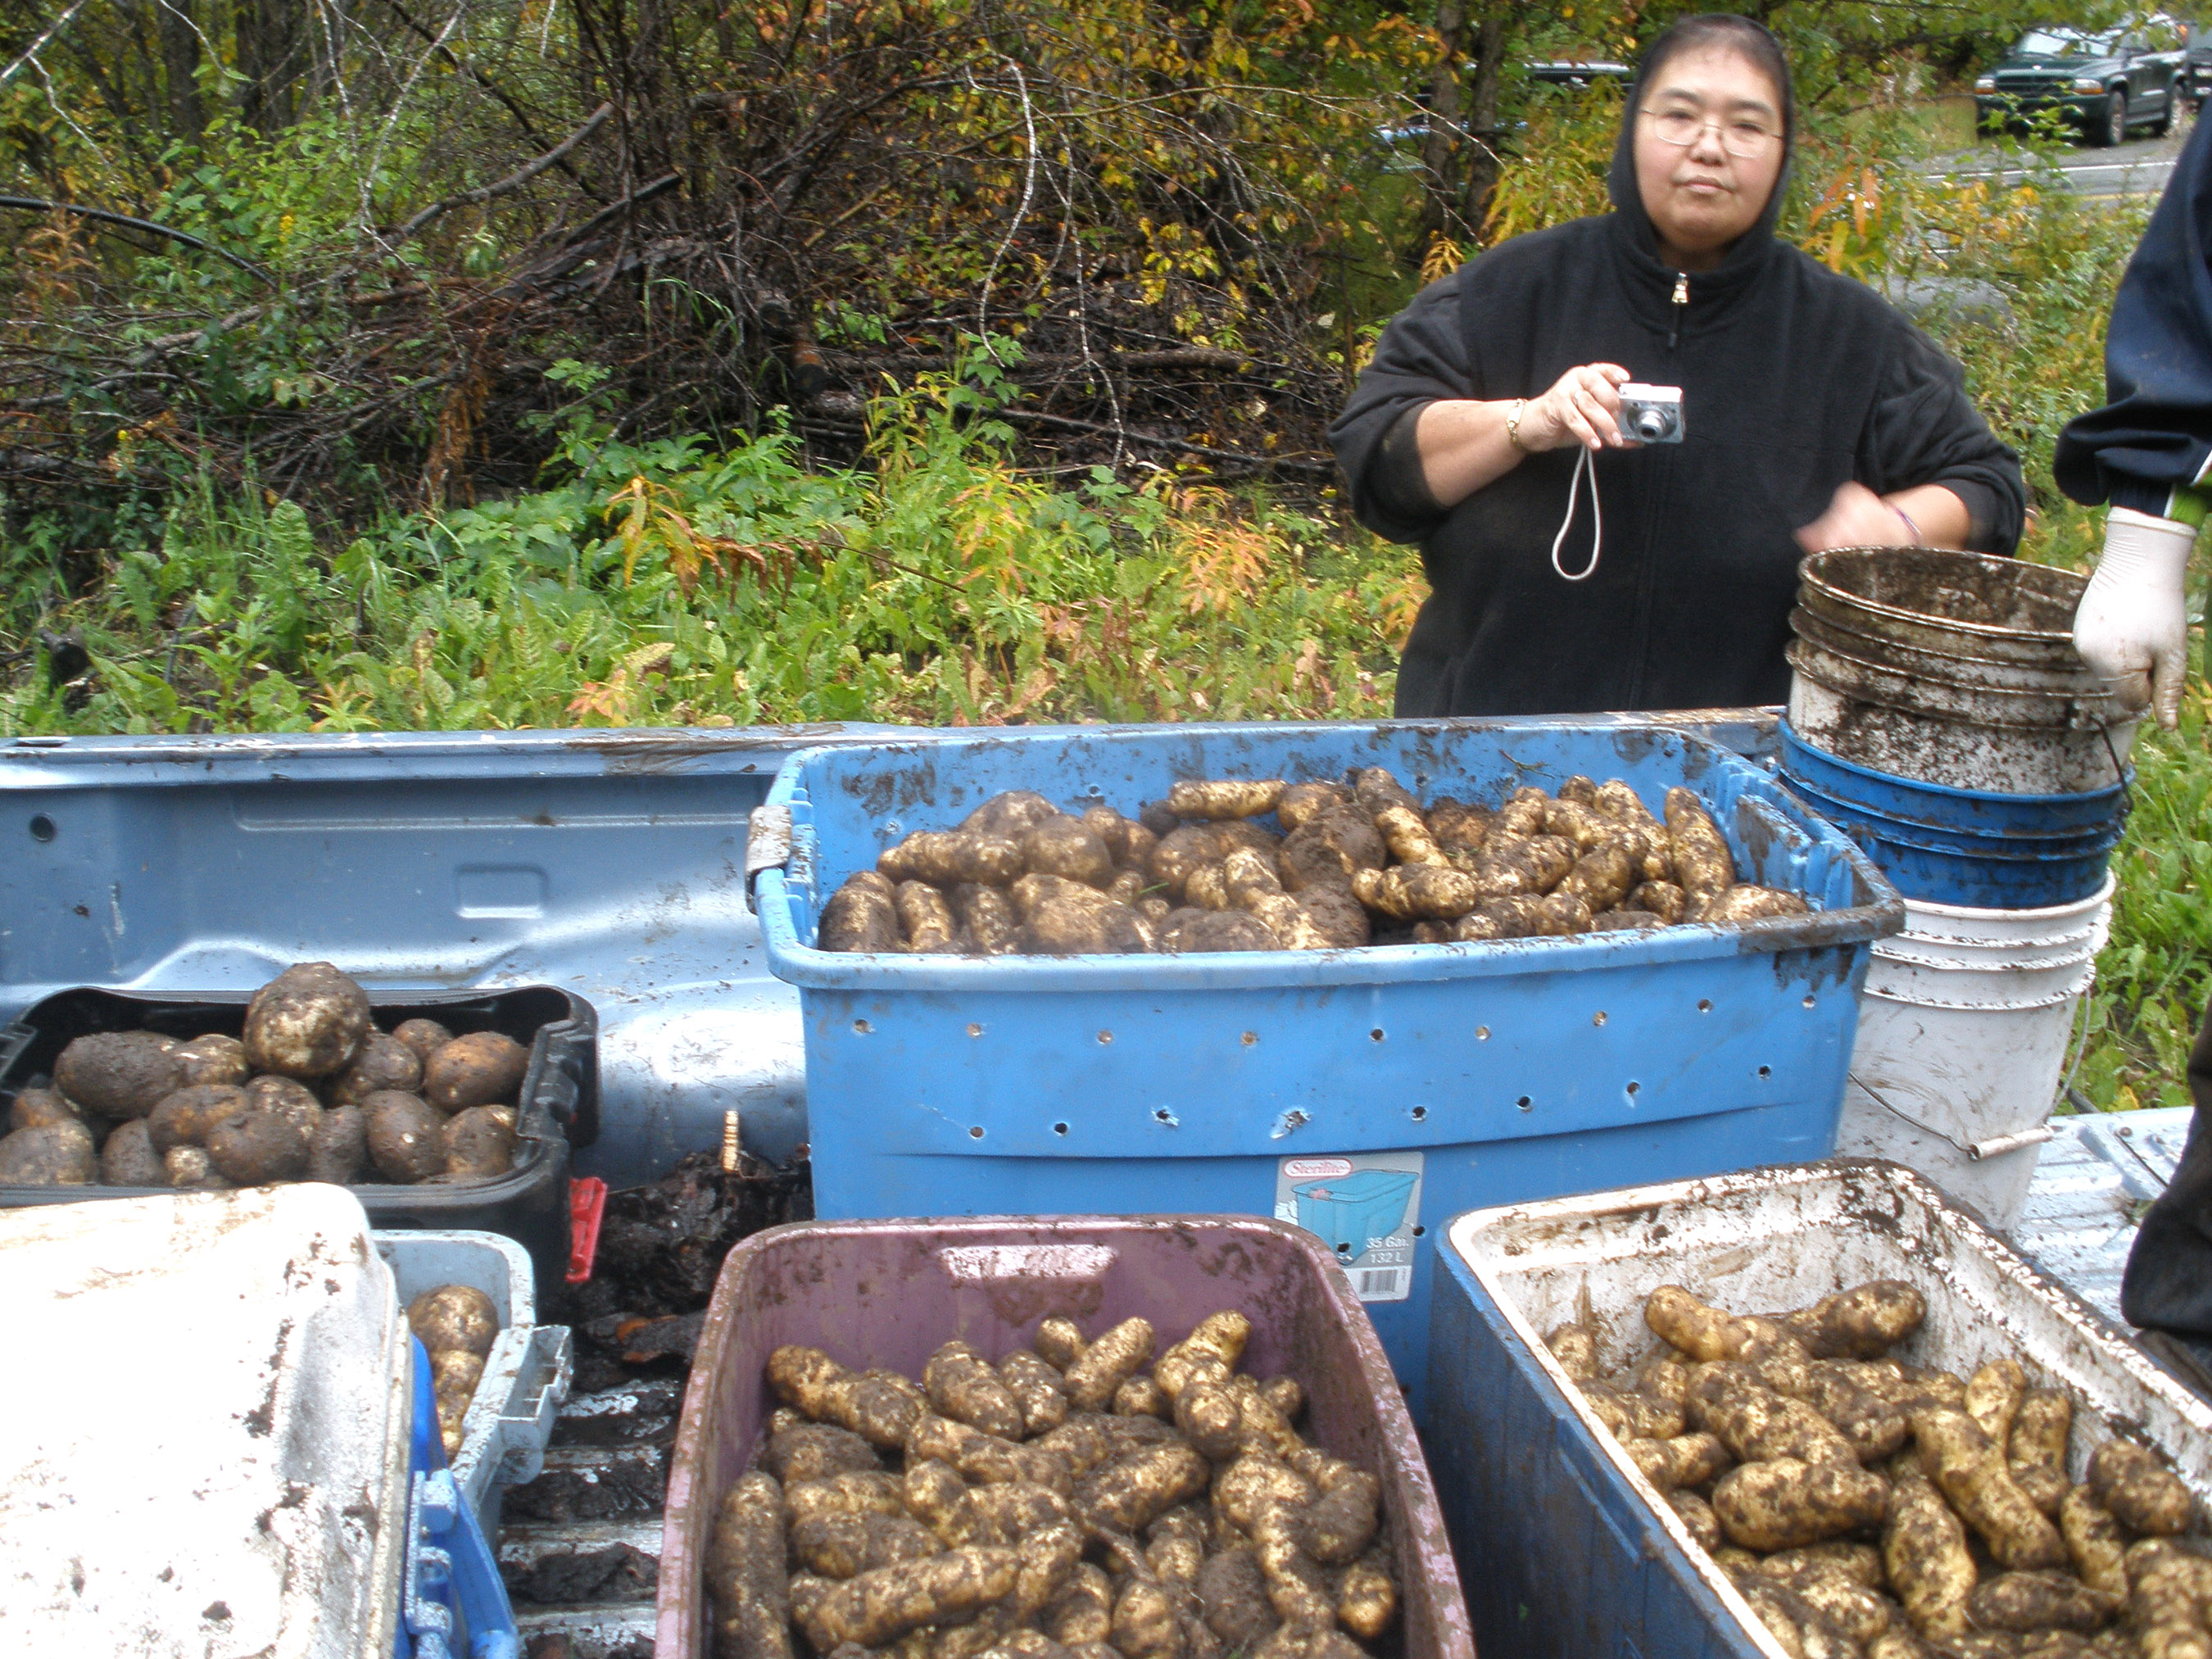 Tubs of potatoes are loaded into the back of a pick-up truck after they were picked at the WISEGUYS potato patch in Klukwan